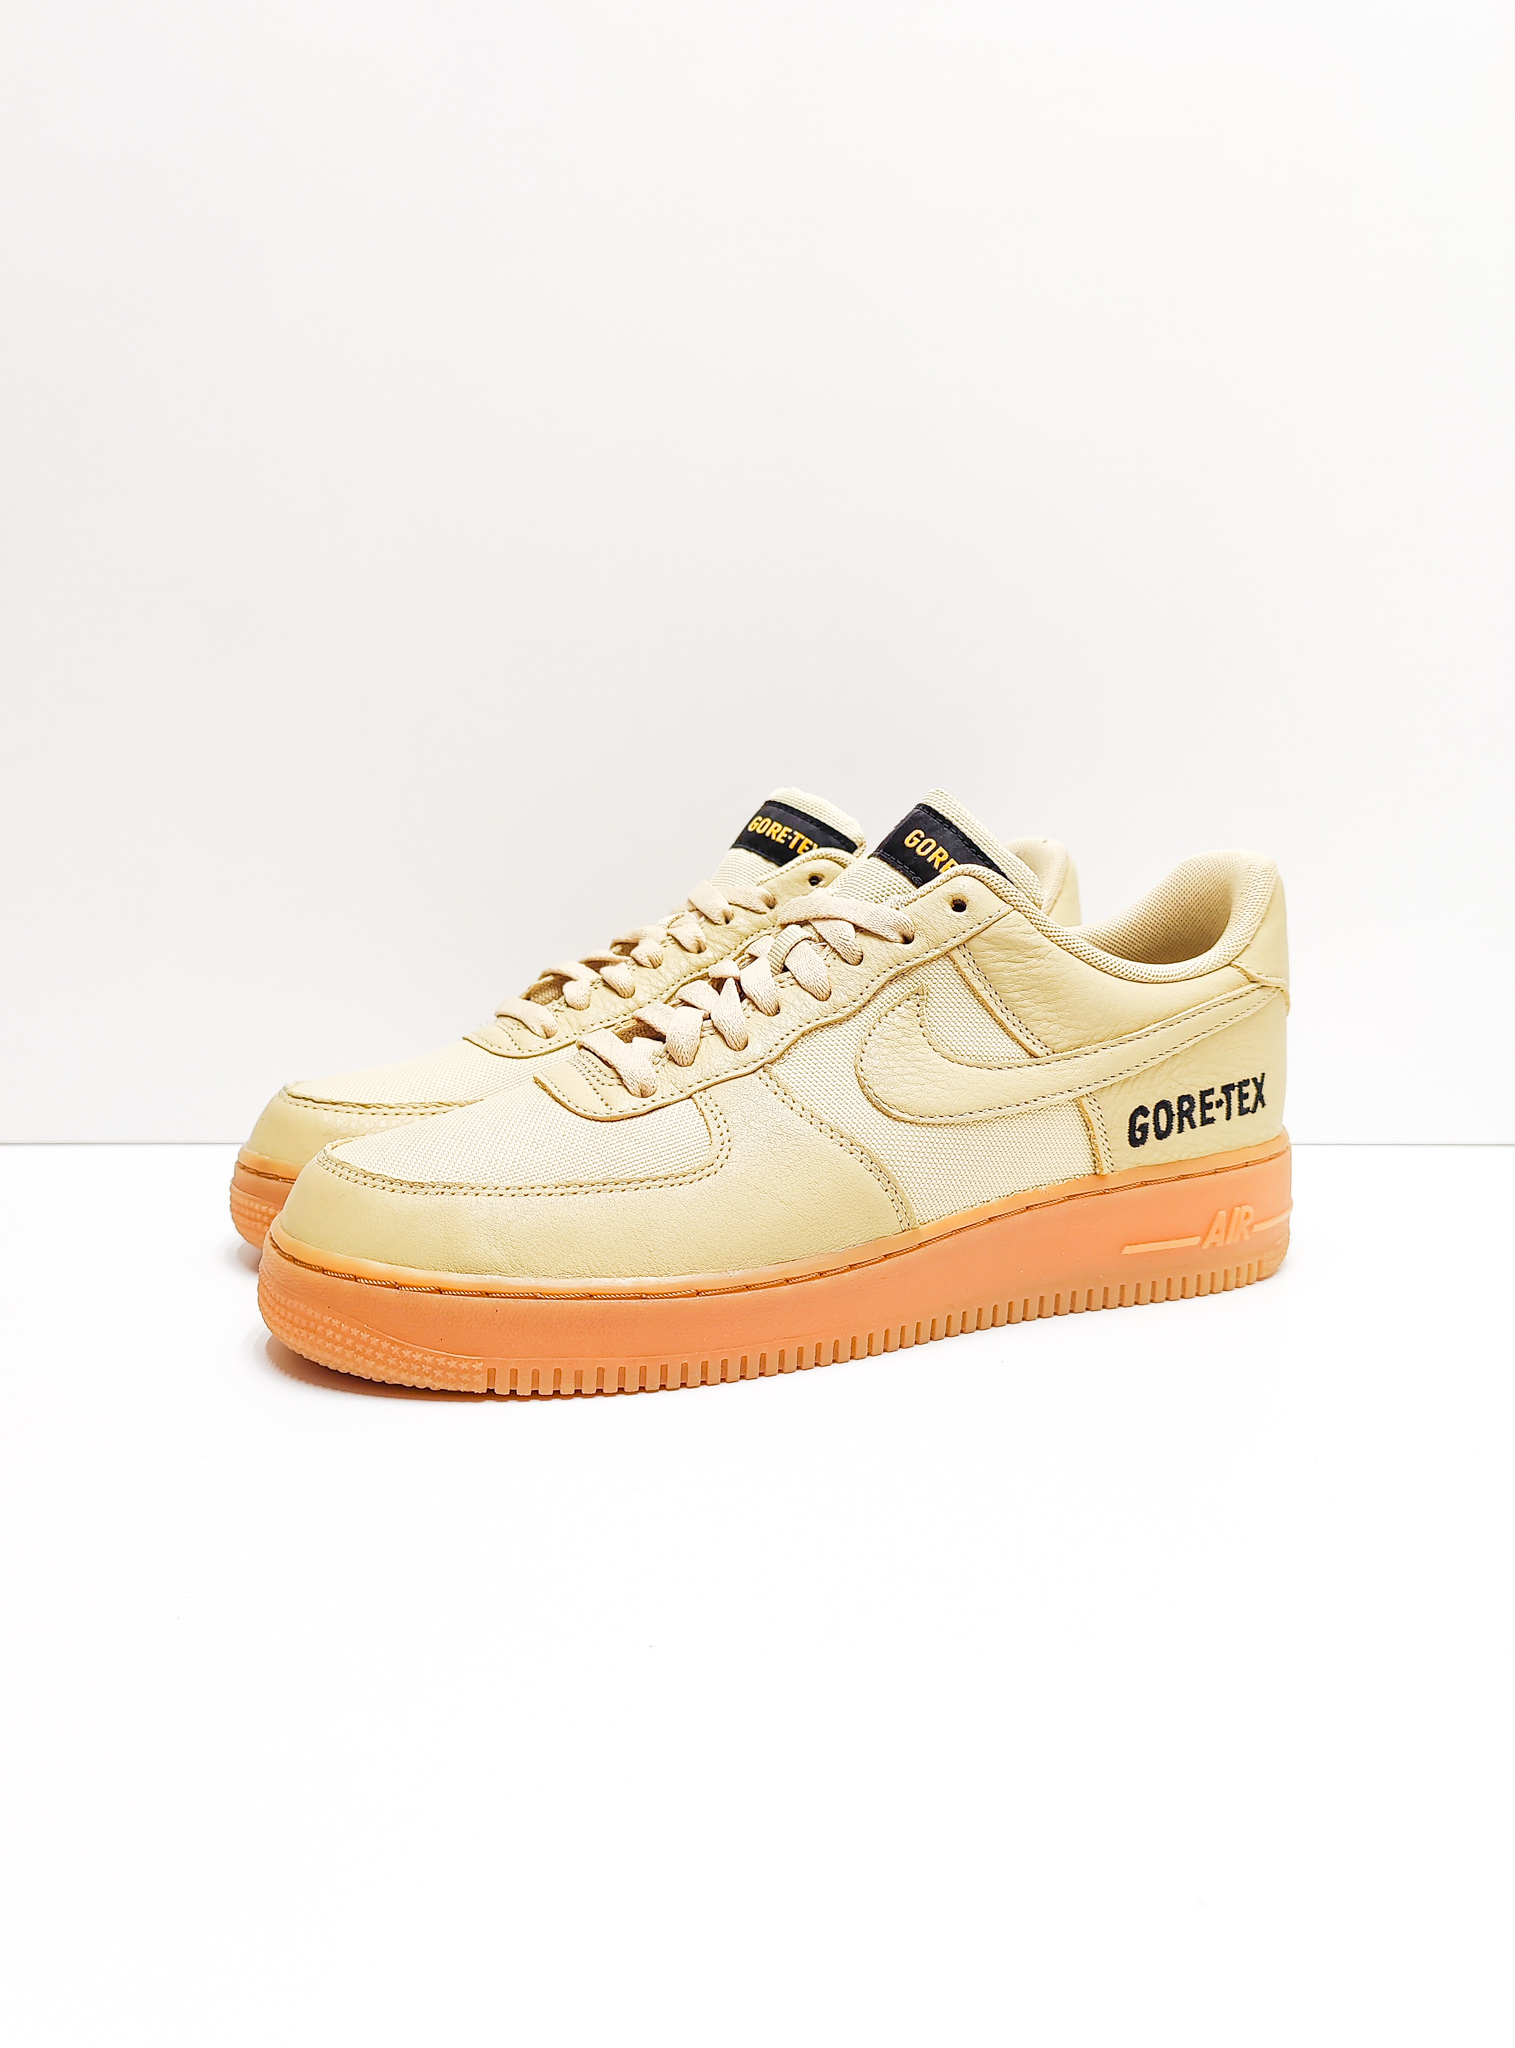 Nike Air Force One Low Gore-Tex Team Gold Khaki